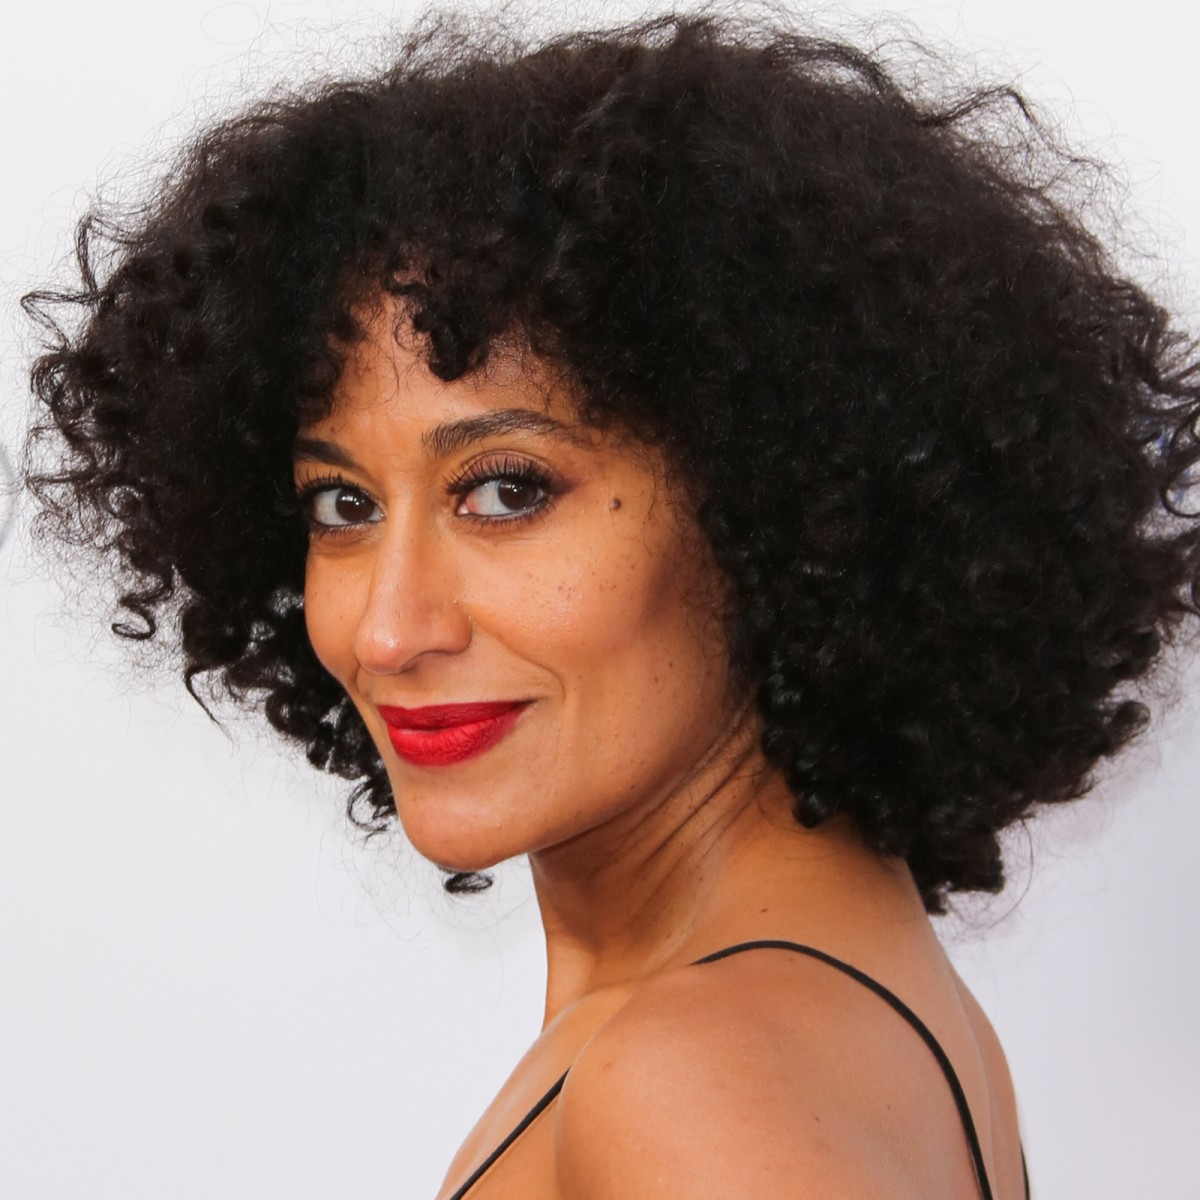 Tracee Ellis Ross photo via Getty Images